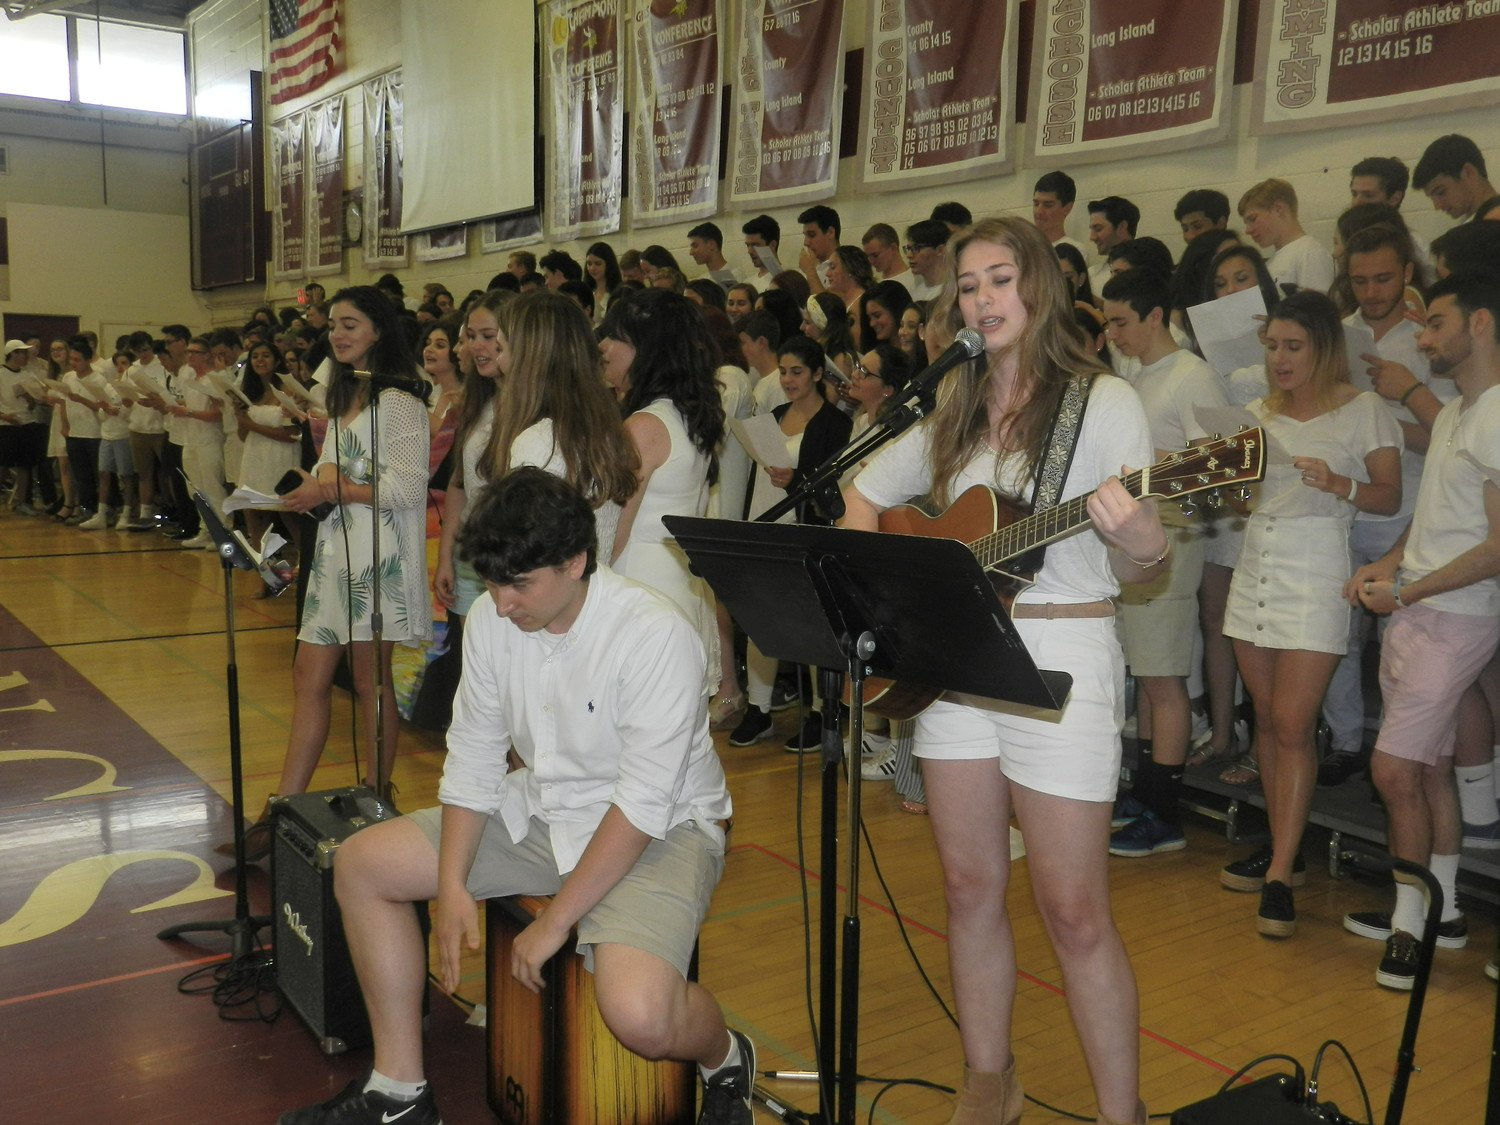 During senior song, Ella Oswald, right, and Dylan McGinley, provided music accompaniment as the class sang together.